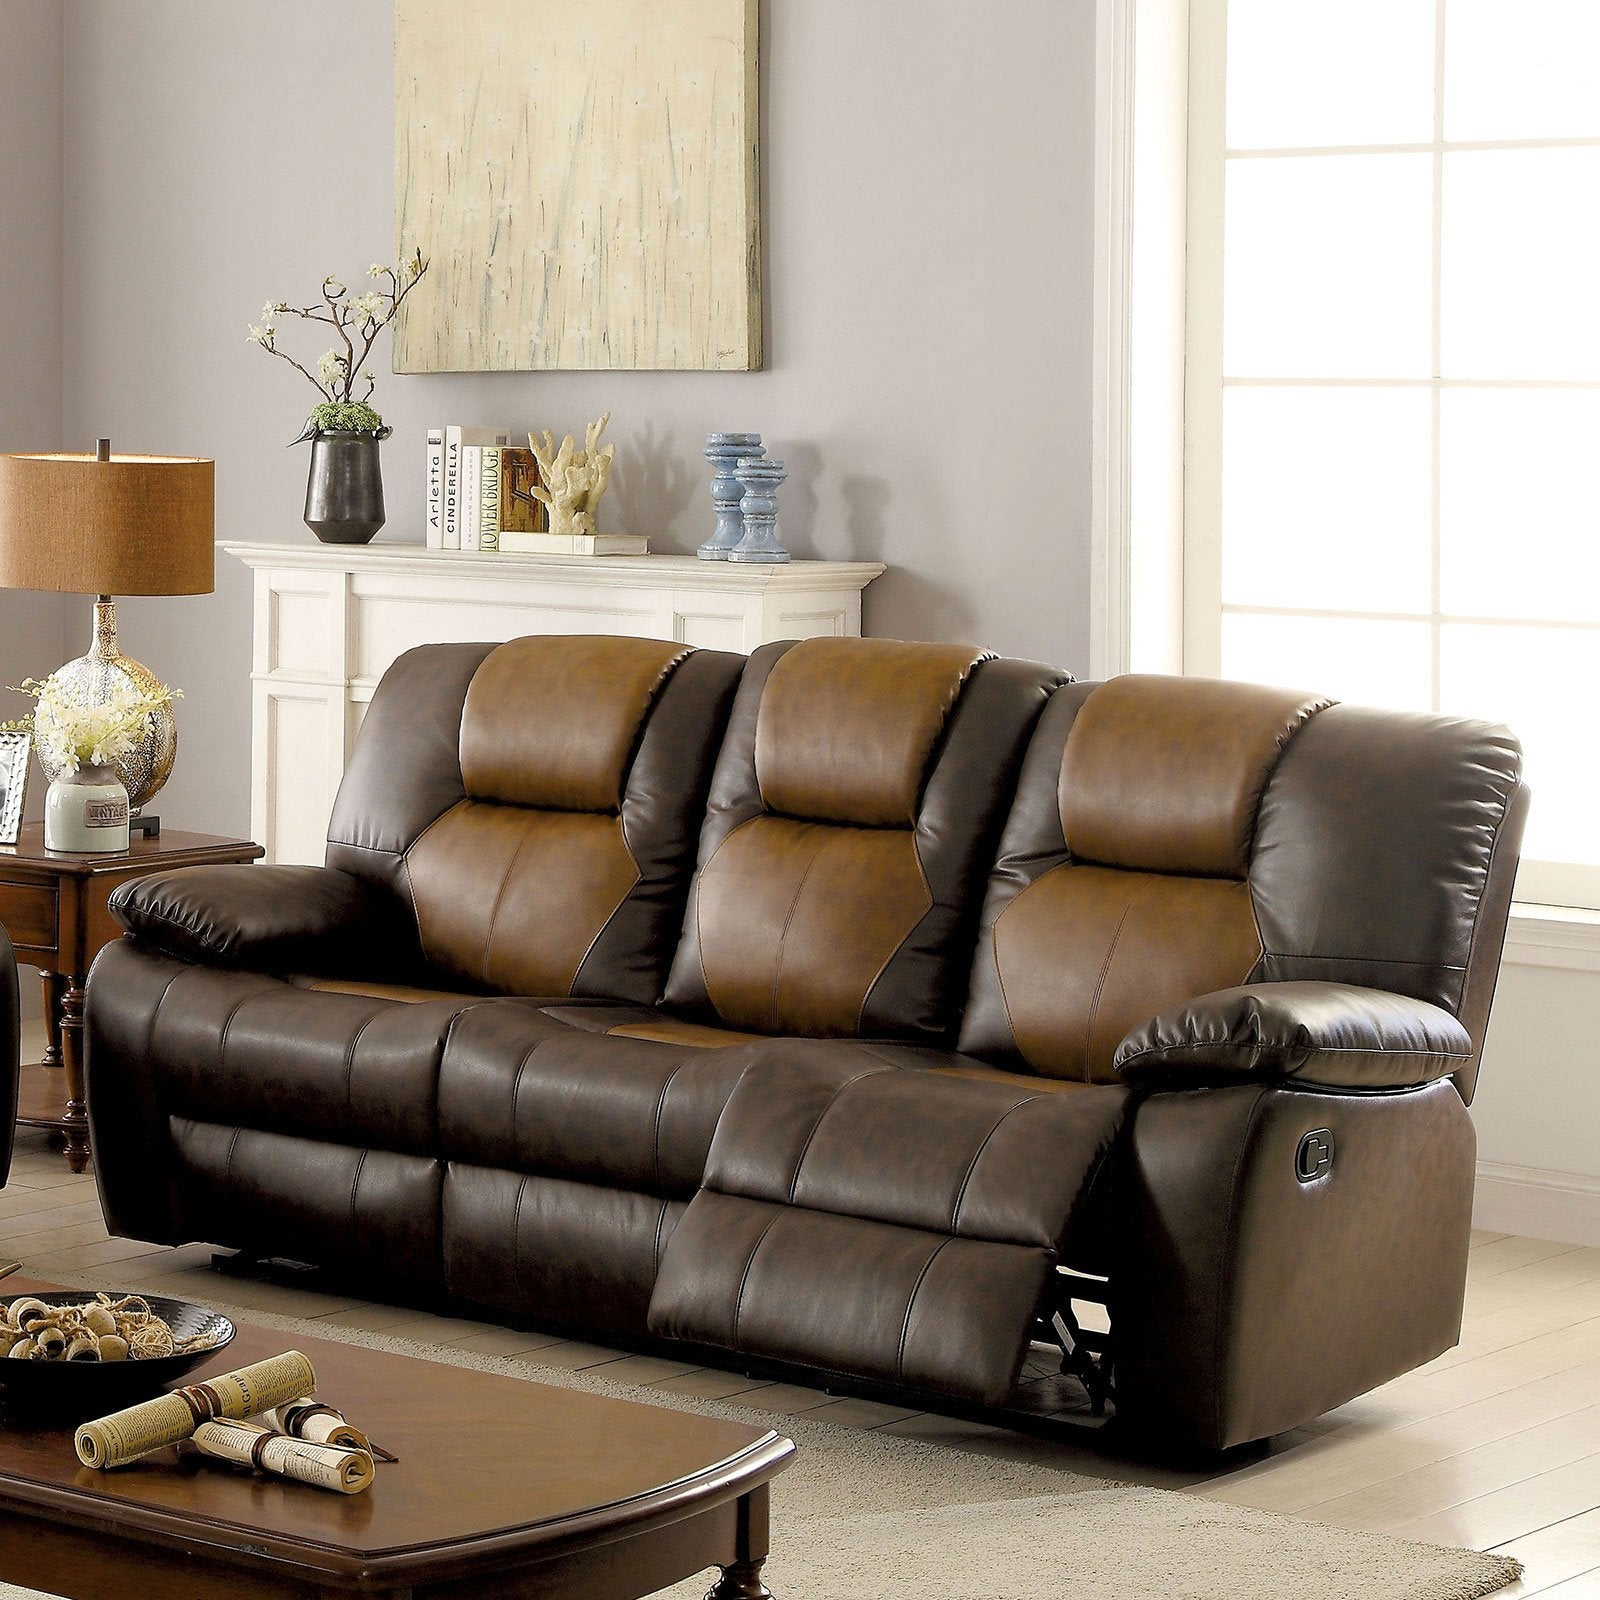 POLLUX Transitional Sofa w- 2 Recliners - InteriorDesignsToGo.com